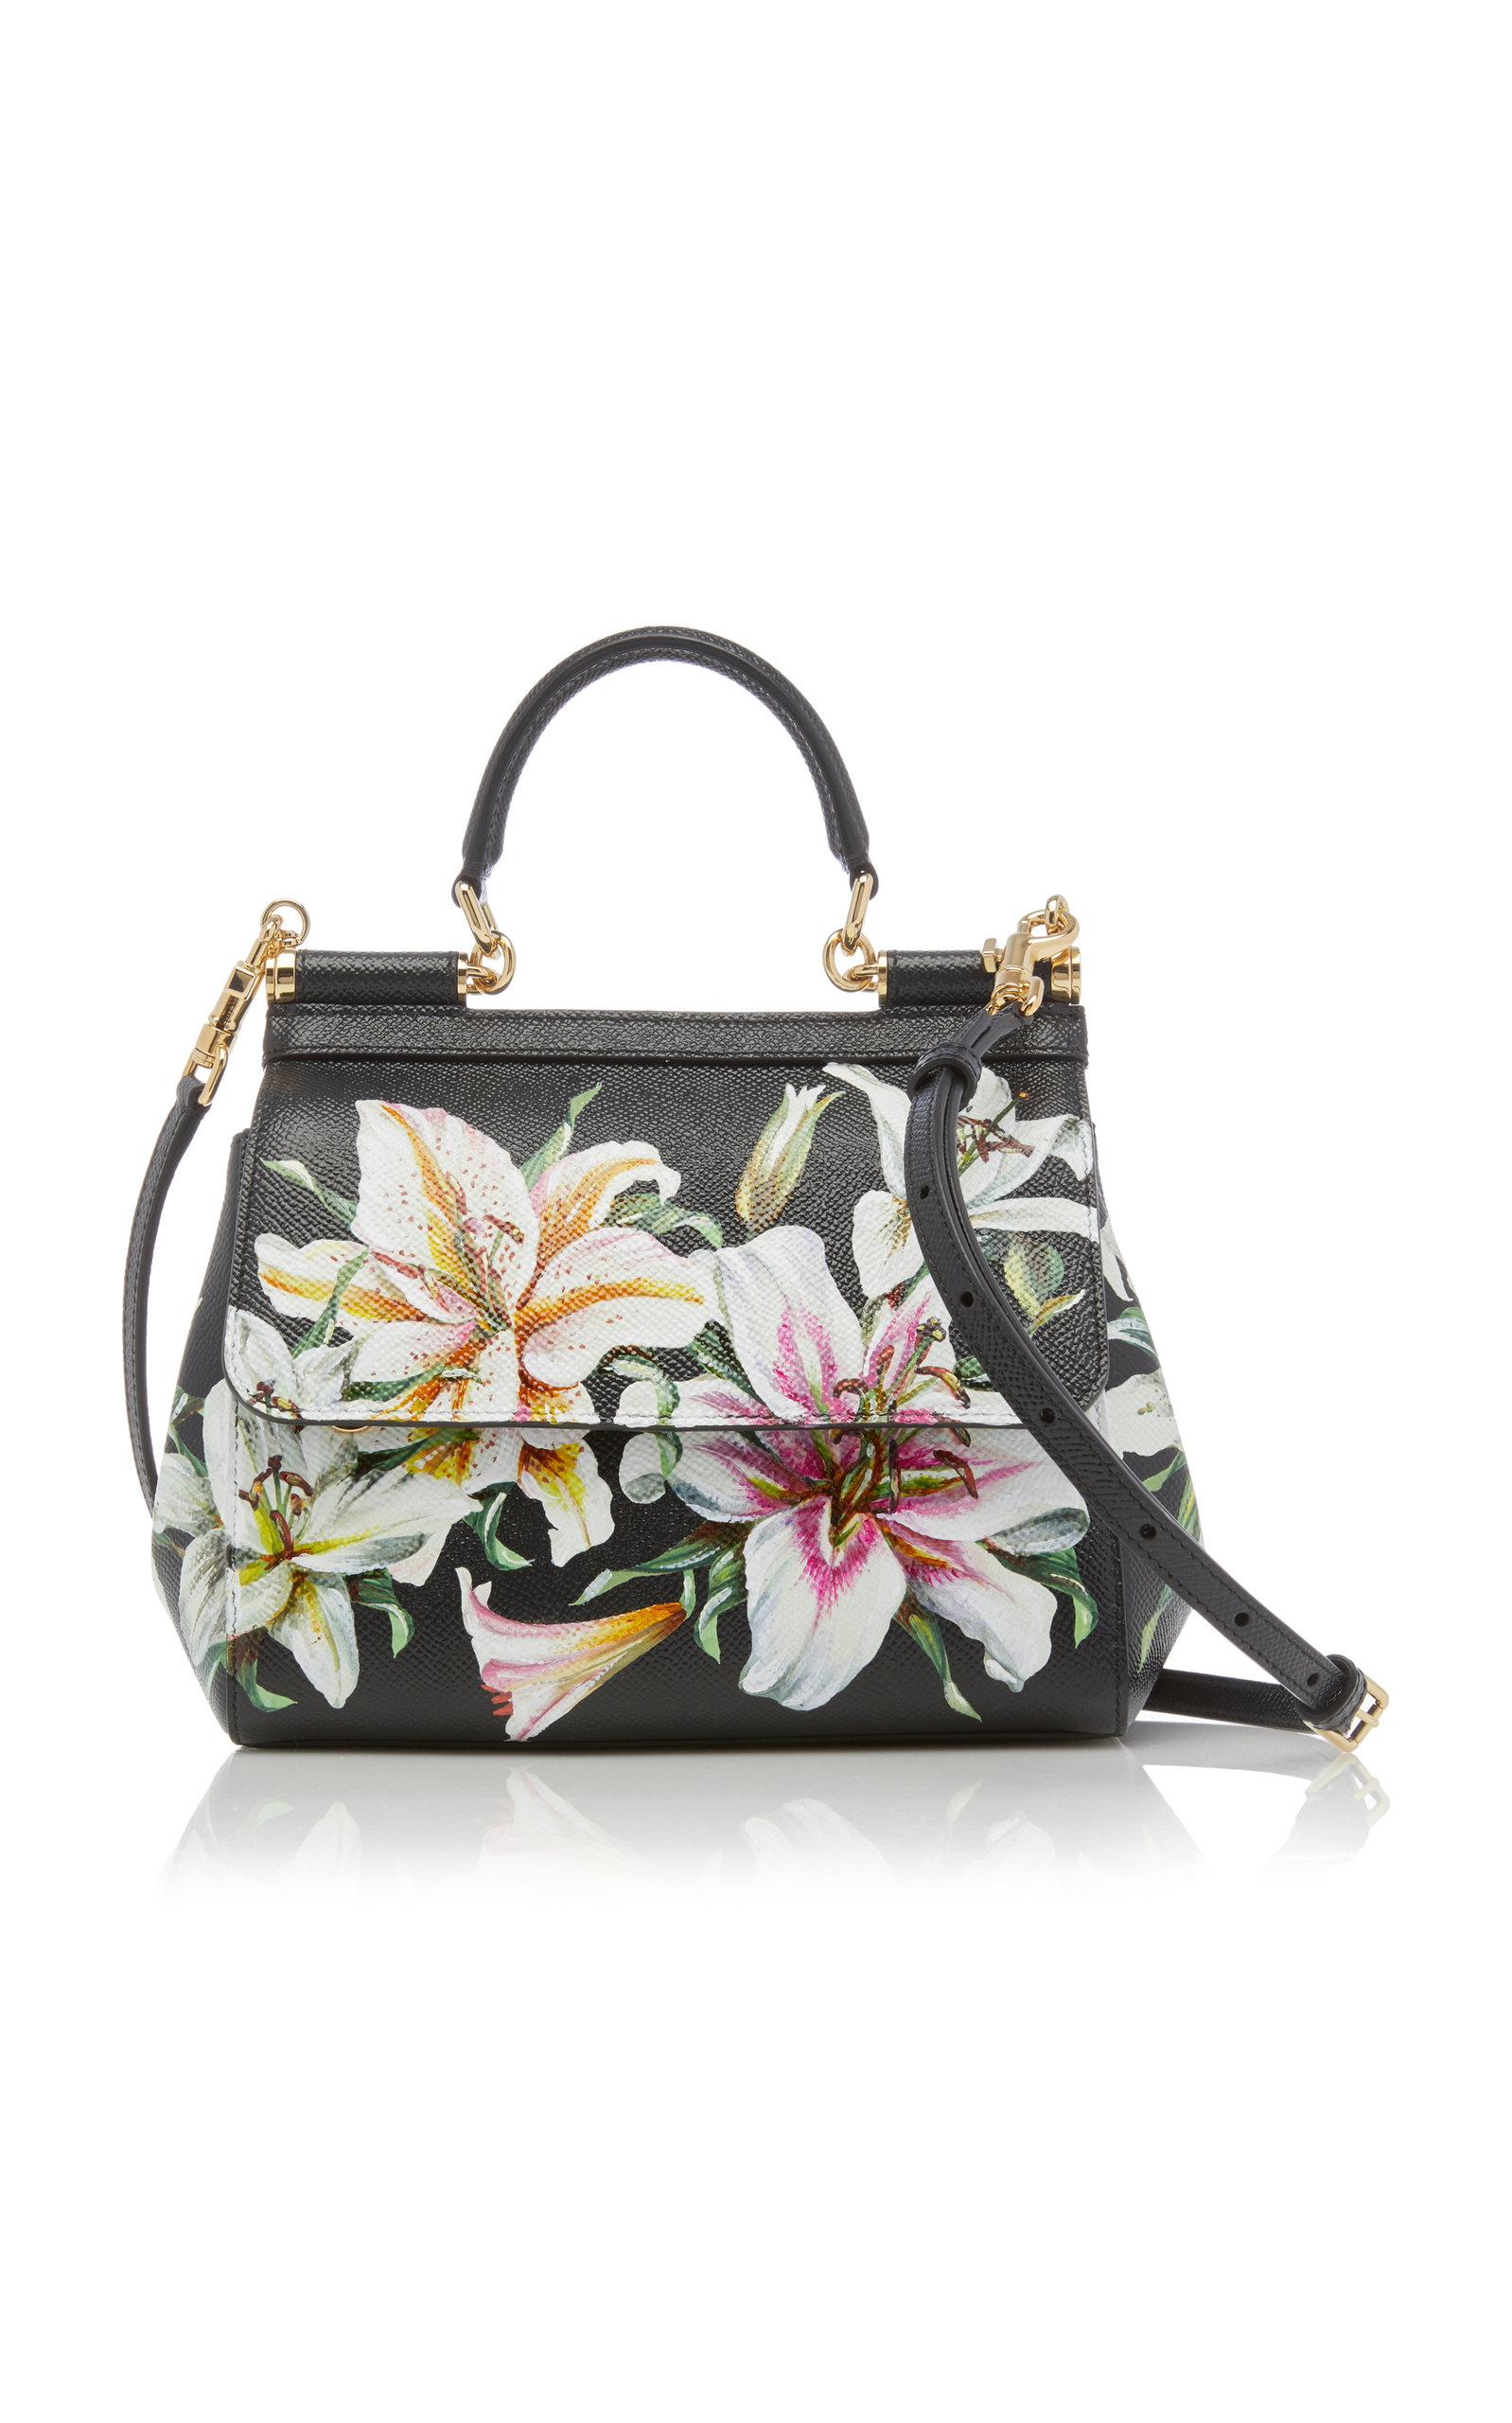 e2265827aa Dolce   GabbanaSicily Small Floral-Printed Textured-Leather Shoulder Bag